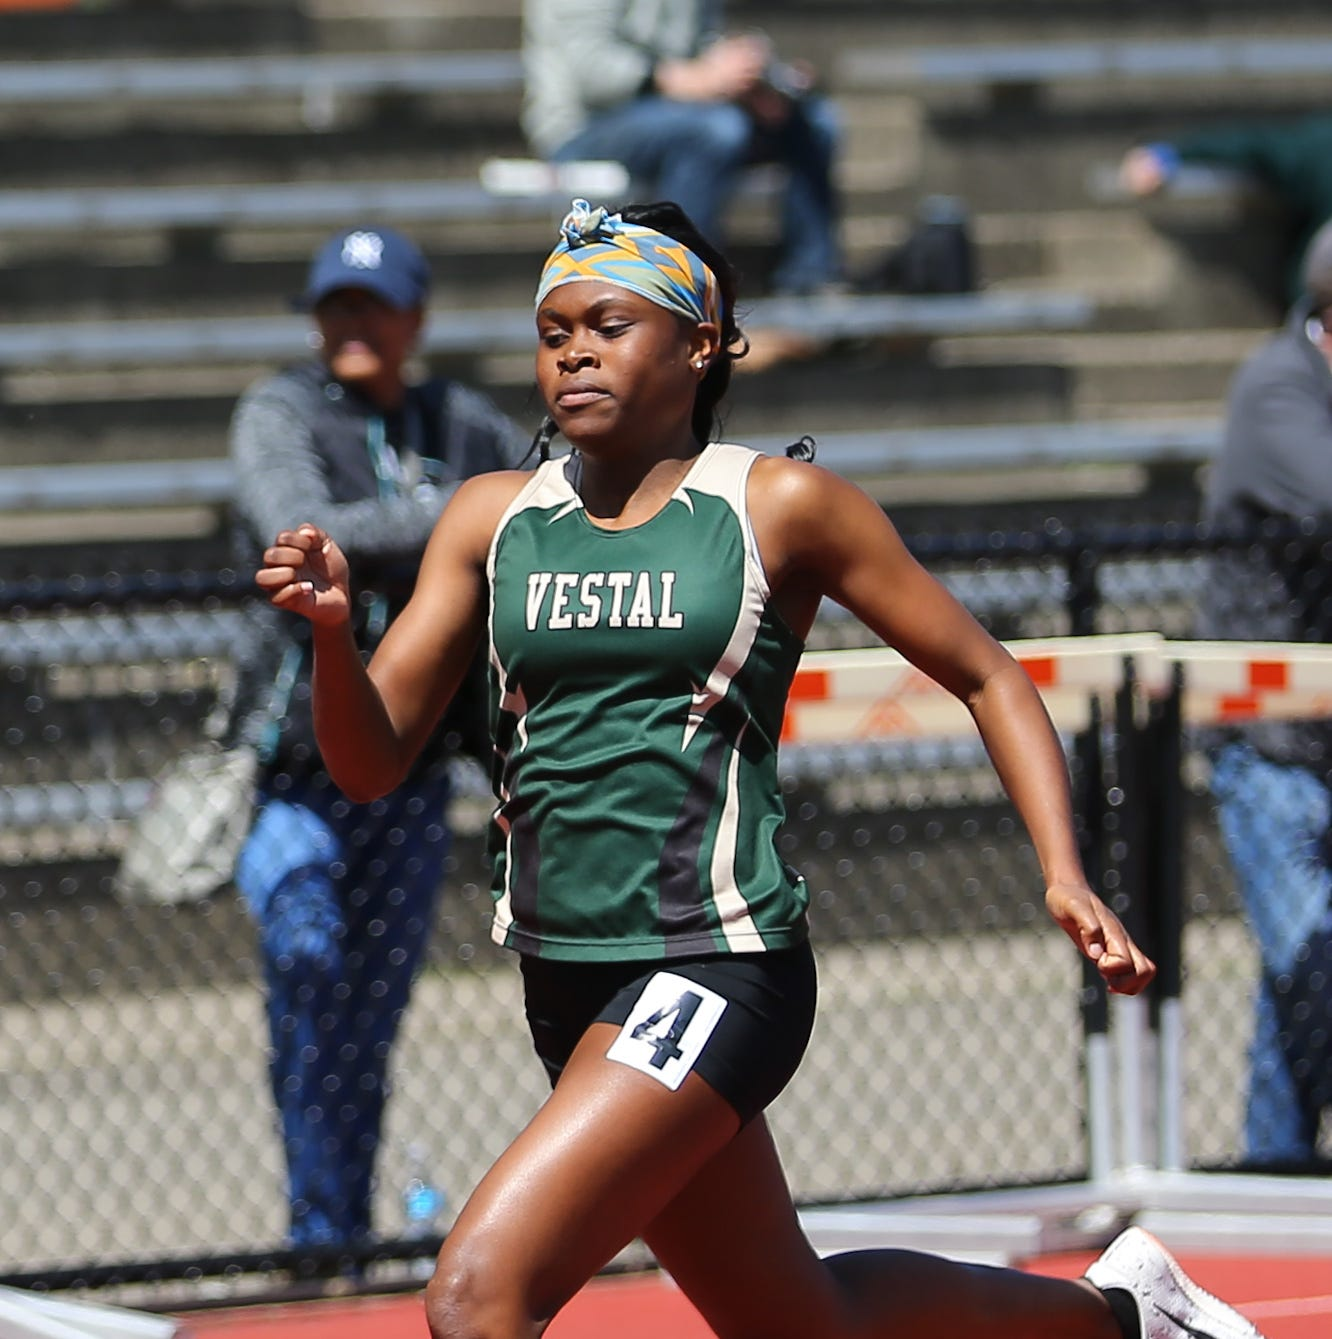 Check out the best of the best from Parkhurst Invitational, beginning with Vestal's Tia Jones